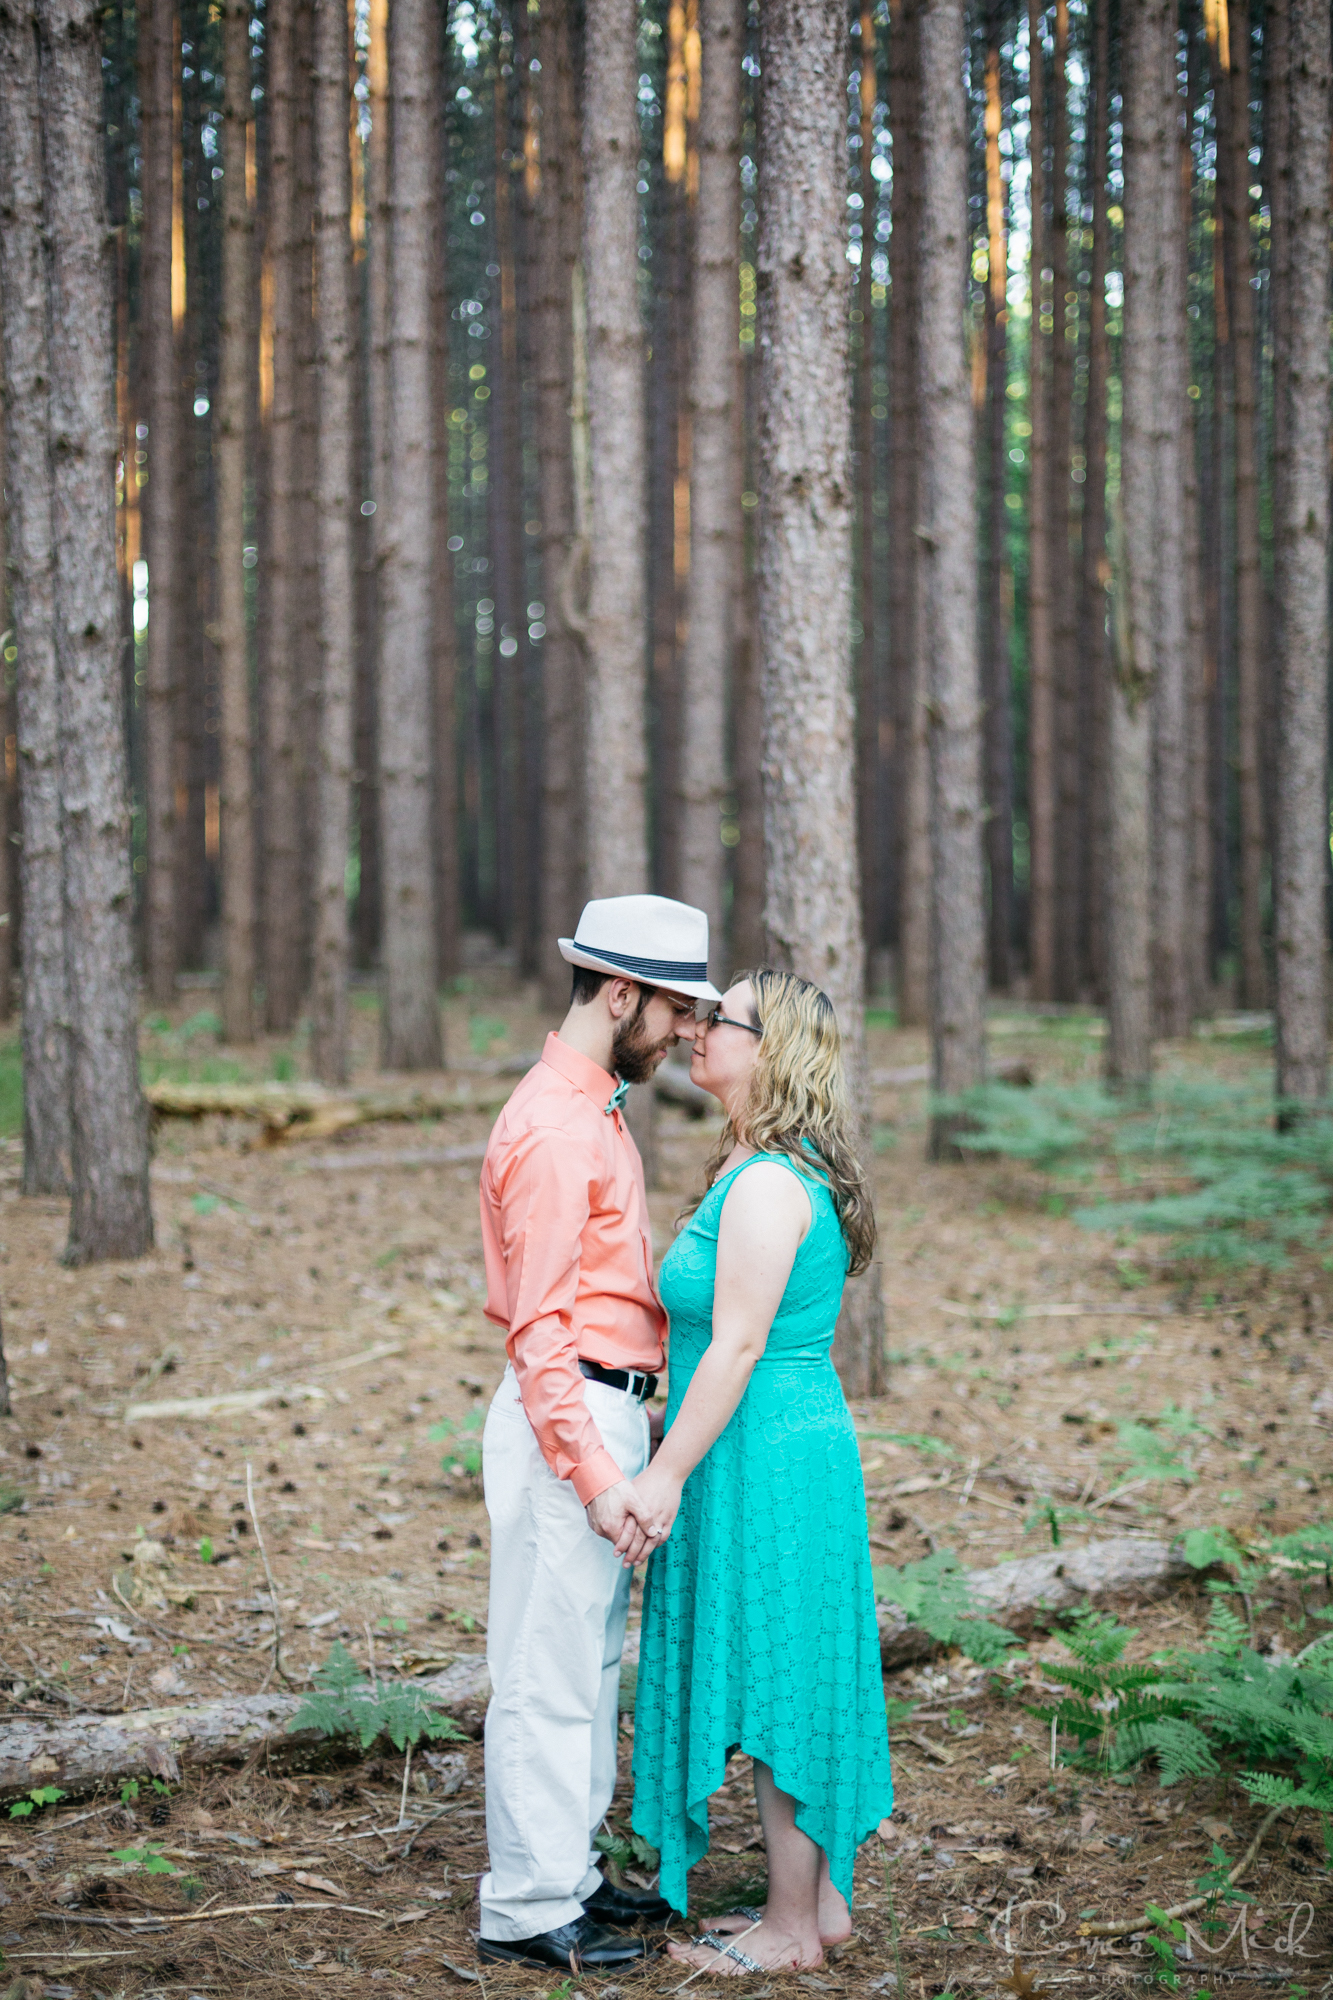 Oak Openings MetroPark Ohio - Peter and Rachel Engaged - Corrie Mick Photography-15.jpg